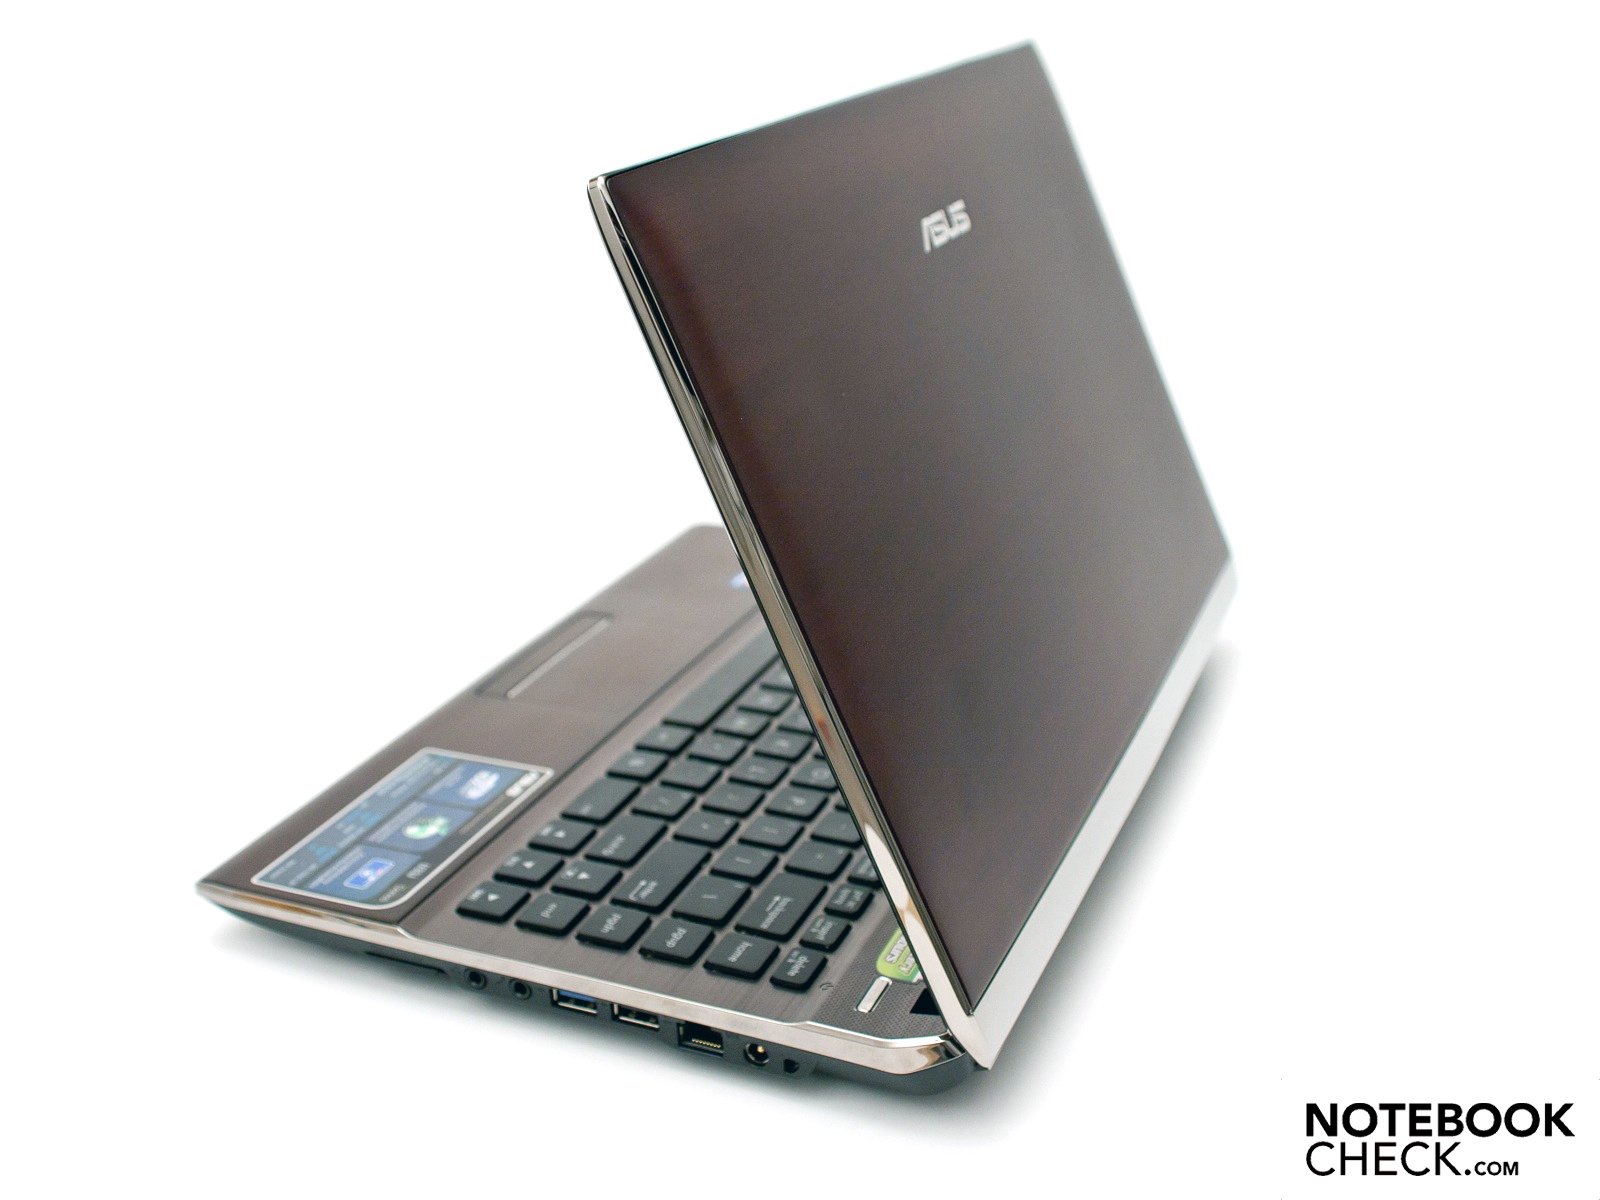 ASUS U33JC NOTEBOOK TURBO BOOST MONITOR DRIVERS